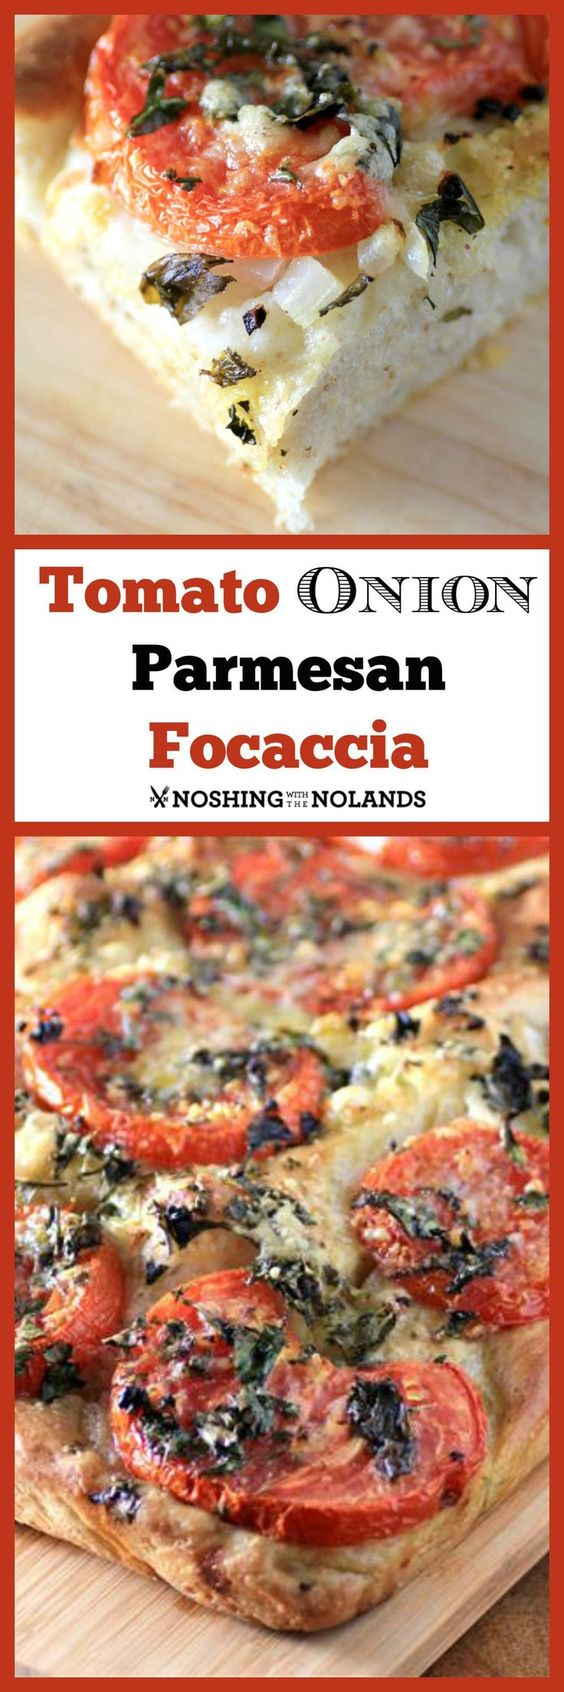 Tomato Onion Parmesan Focaccia by Noshing With The Nolands - Fresh garden tomatoes and onions make this a complete meal. A nice bright crunchy salad is all you need to accompany this gorgeous vegetarian lunch or dinner.